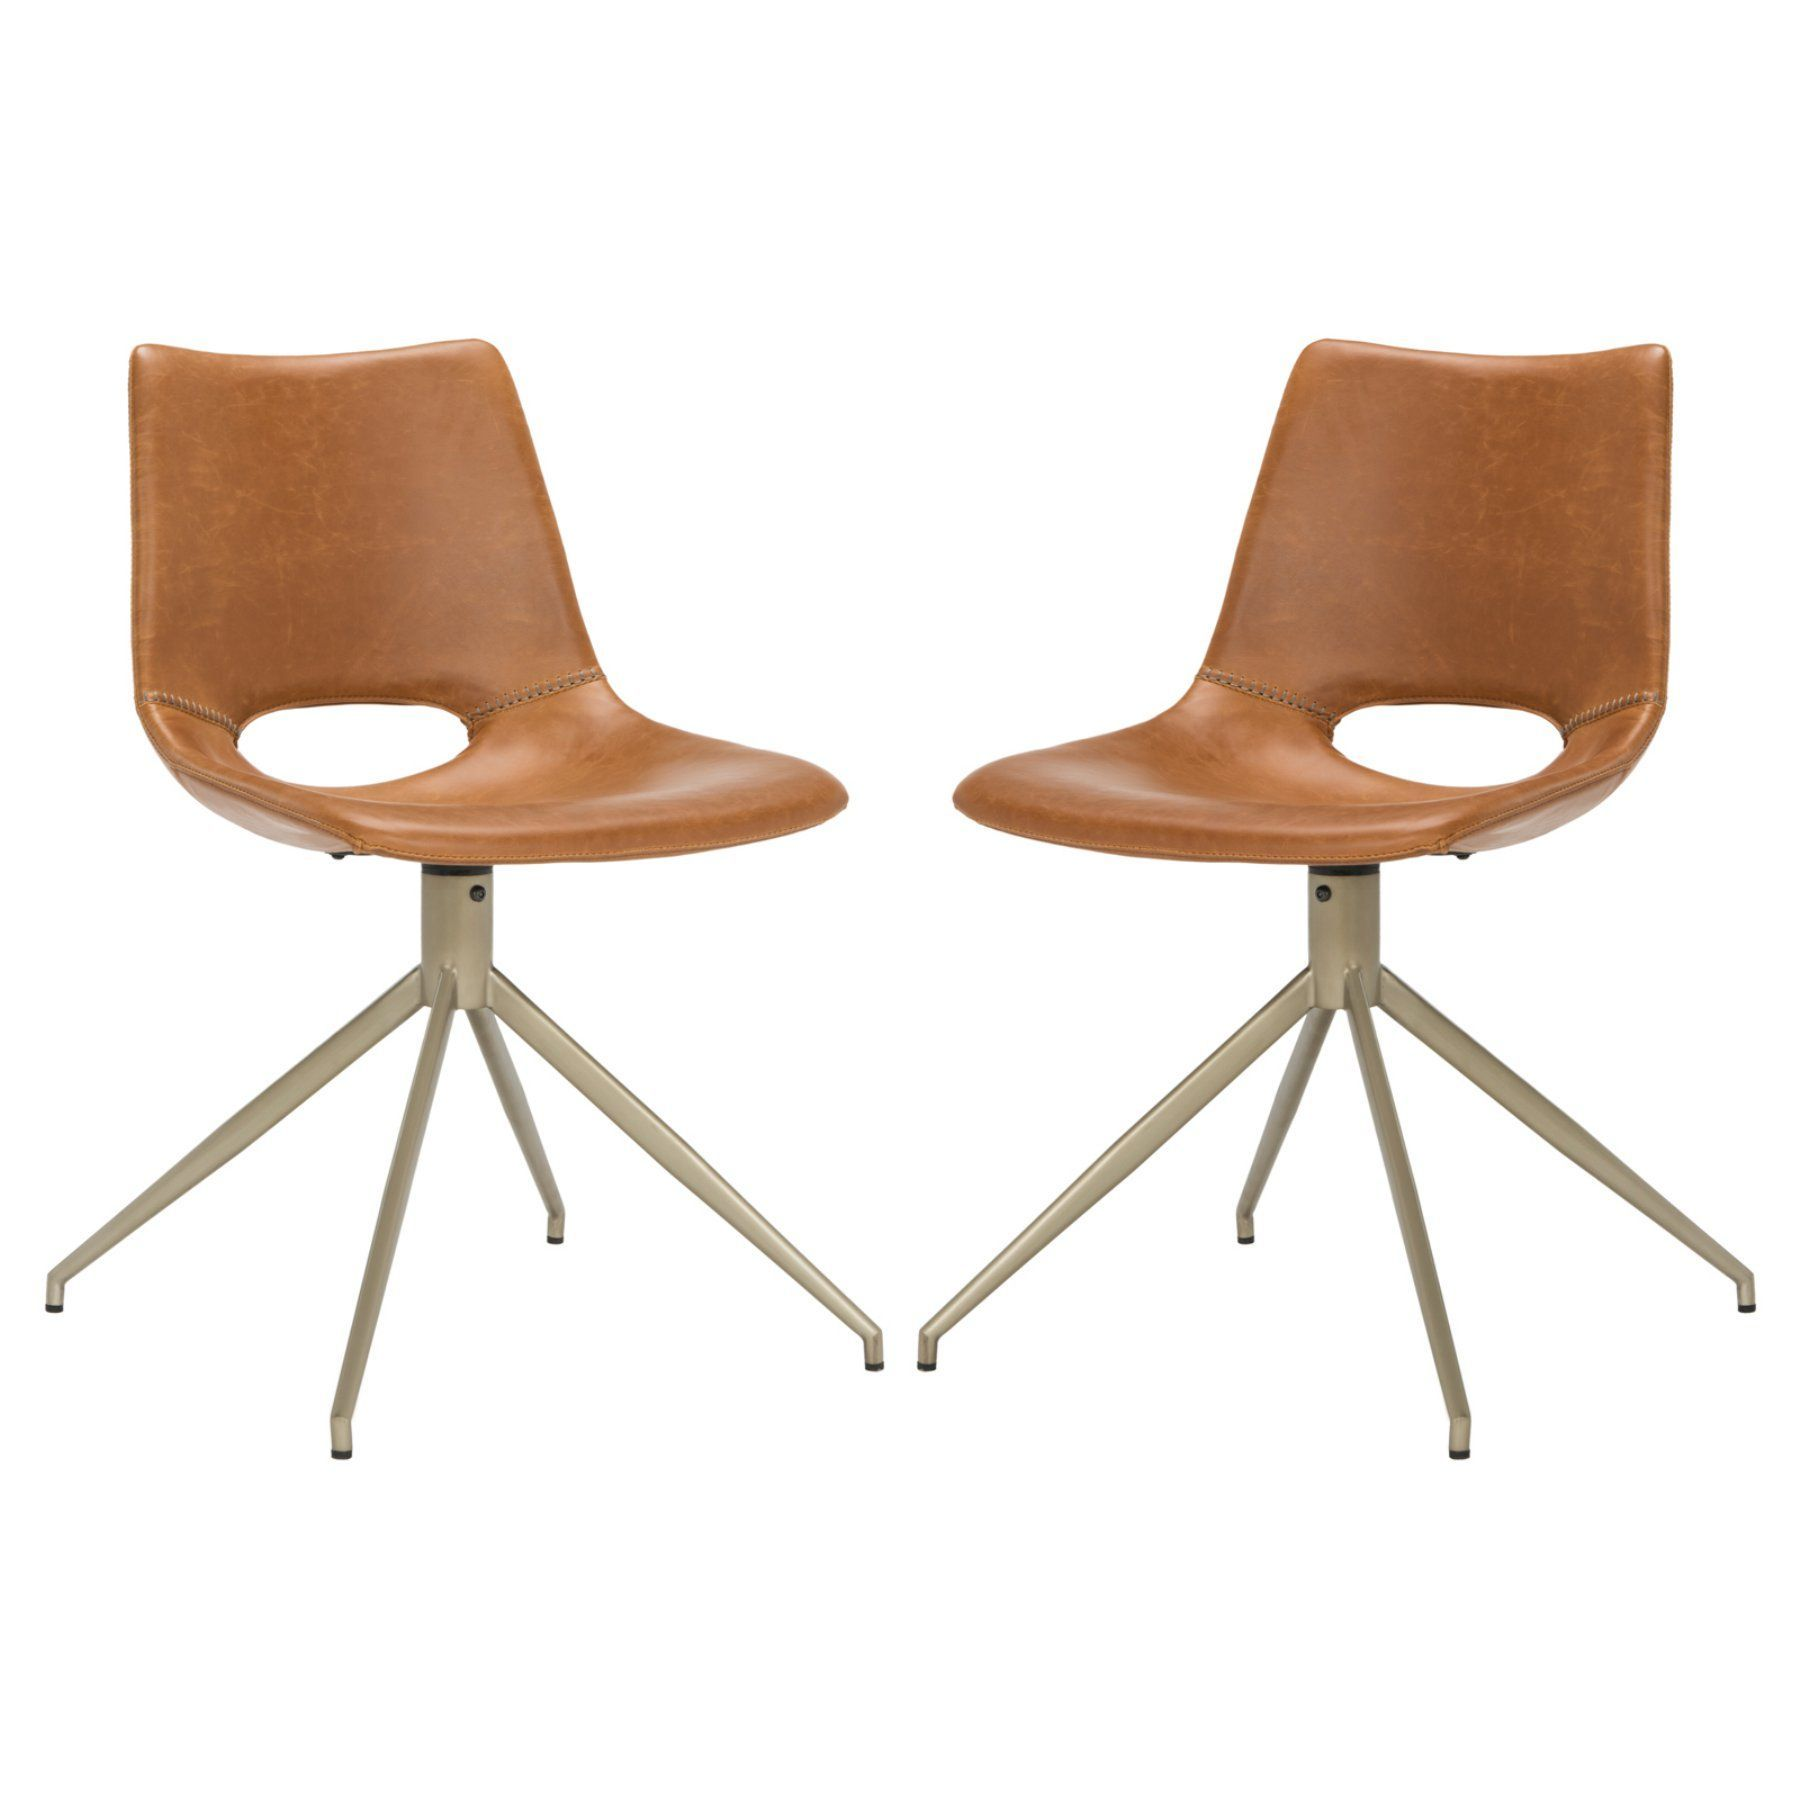 Safavieh danube swivel dining chair set of 2 ach7001a set2